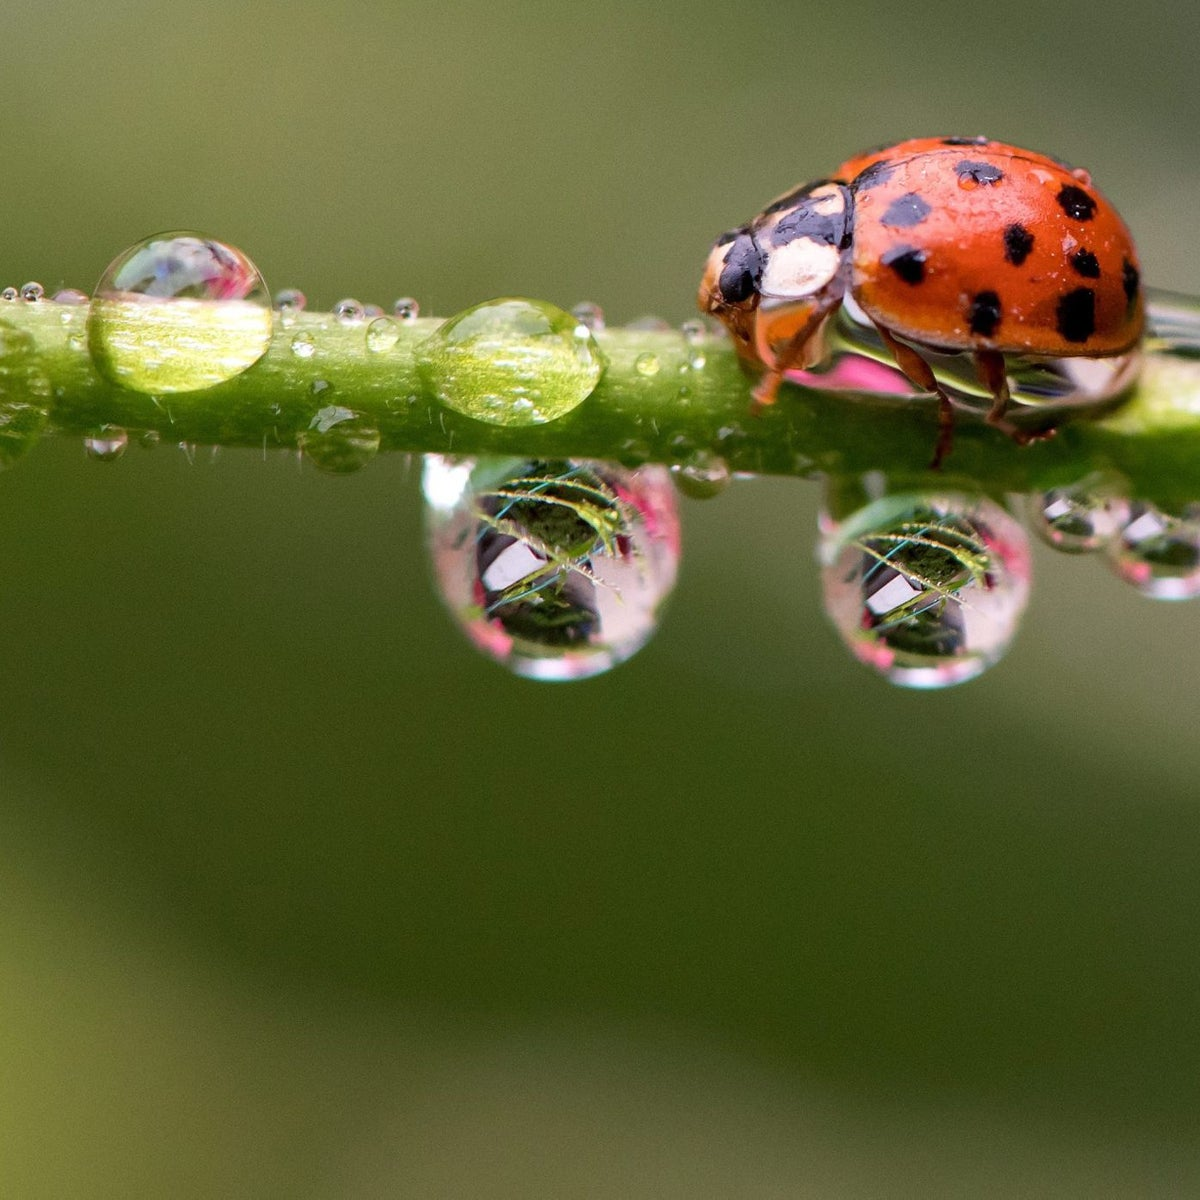 Ladybug on a stem with water drops